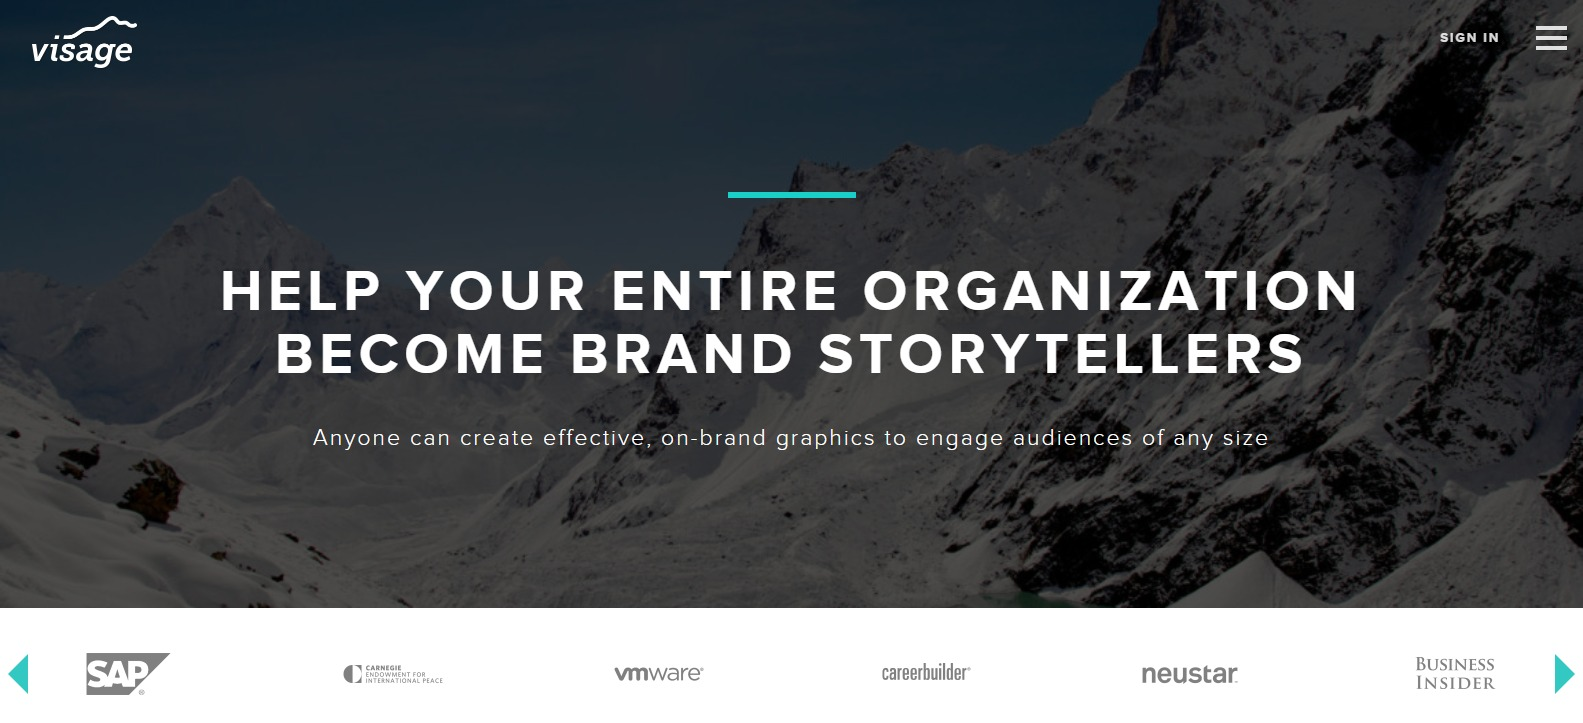 Visage co Visual Content Creation Made Simple